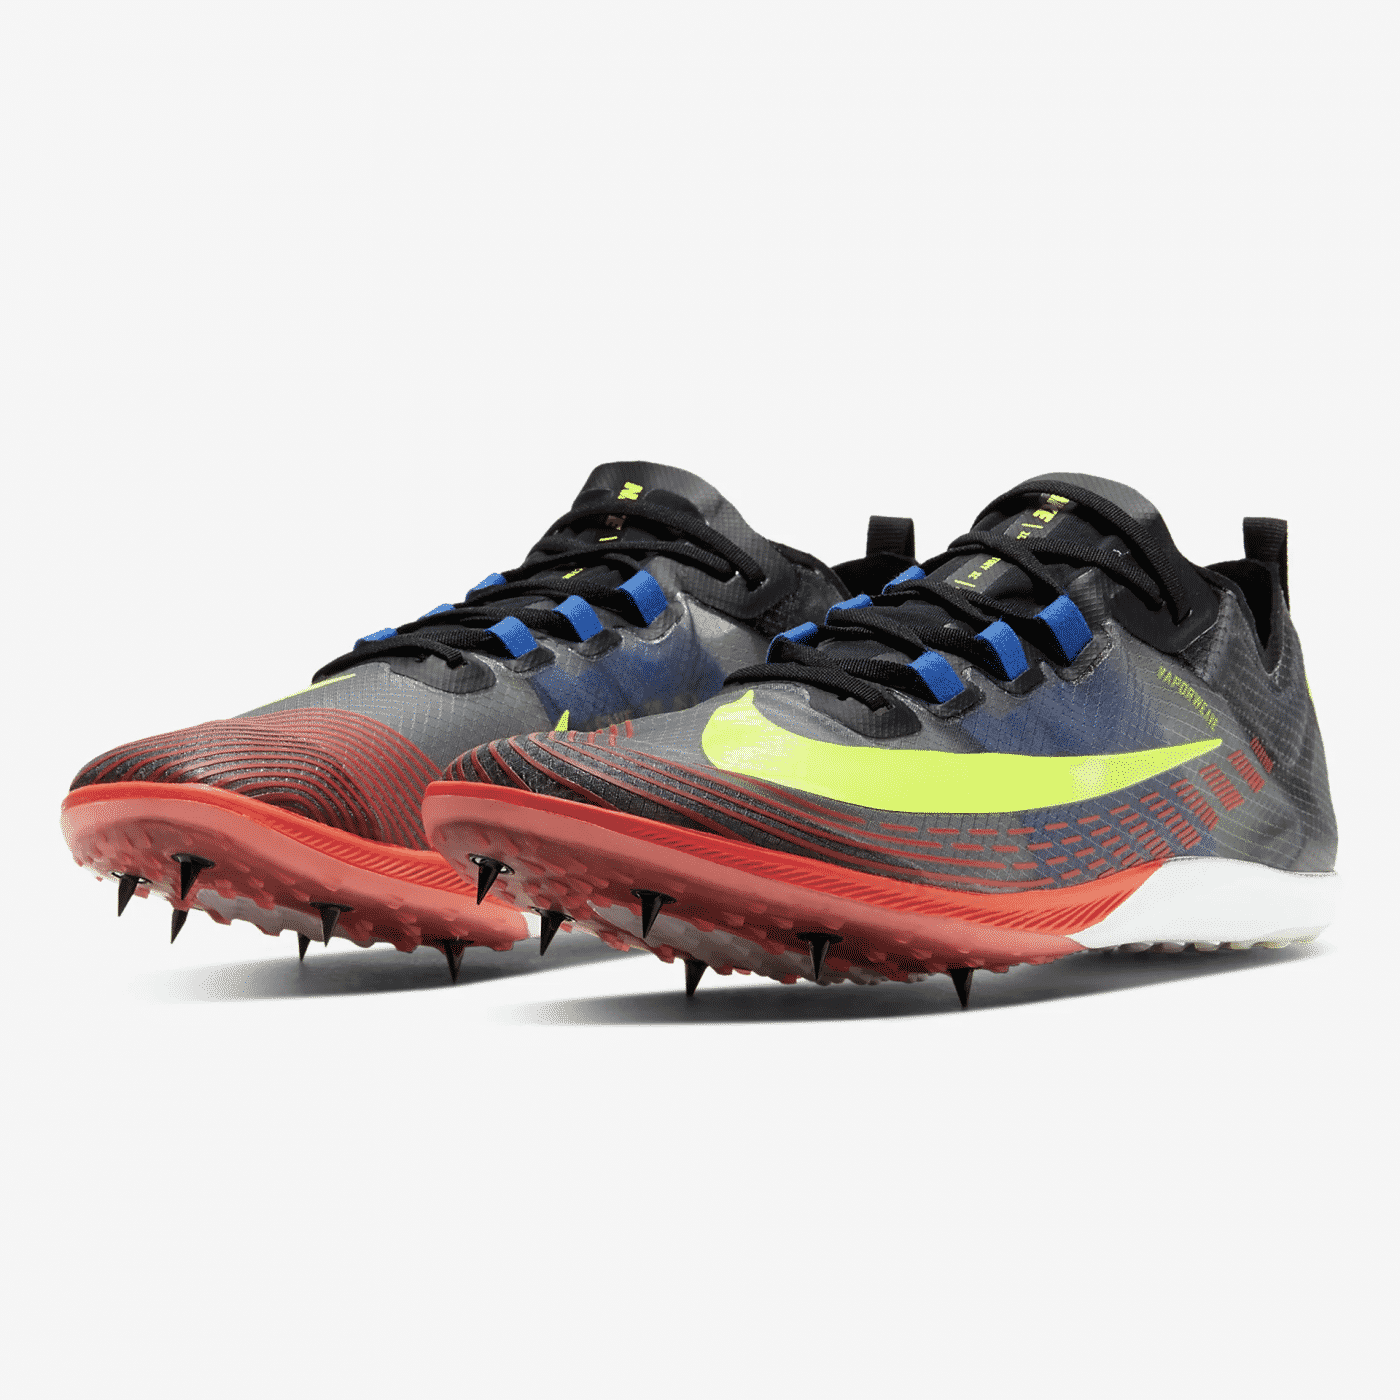 nike_pointes_cross_zoom_victory_XC_5_5